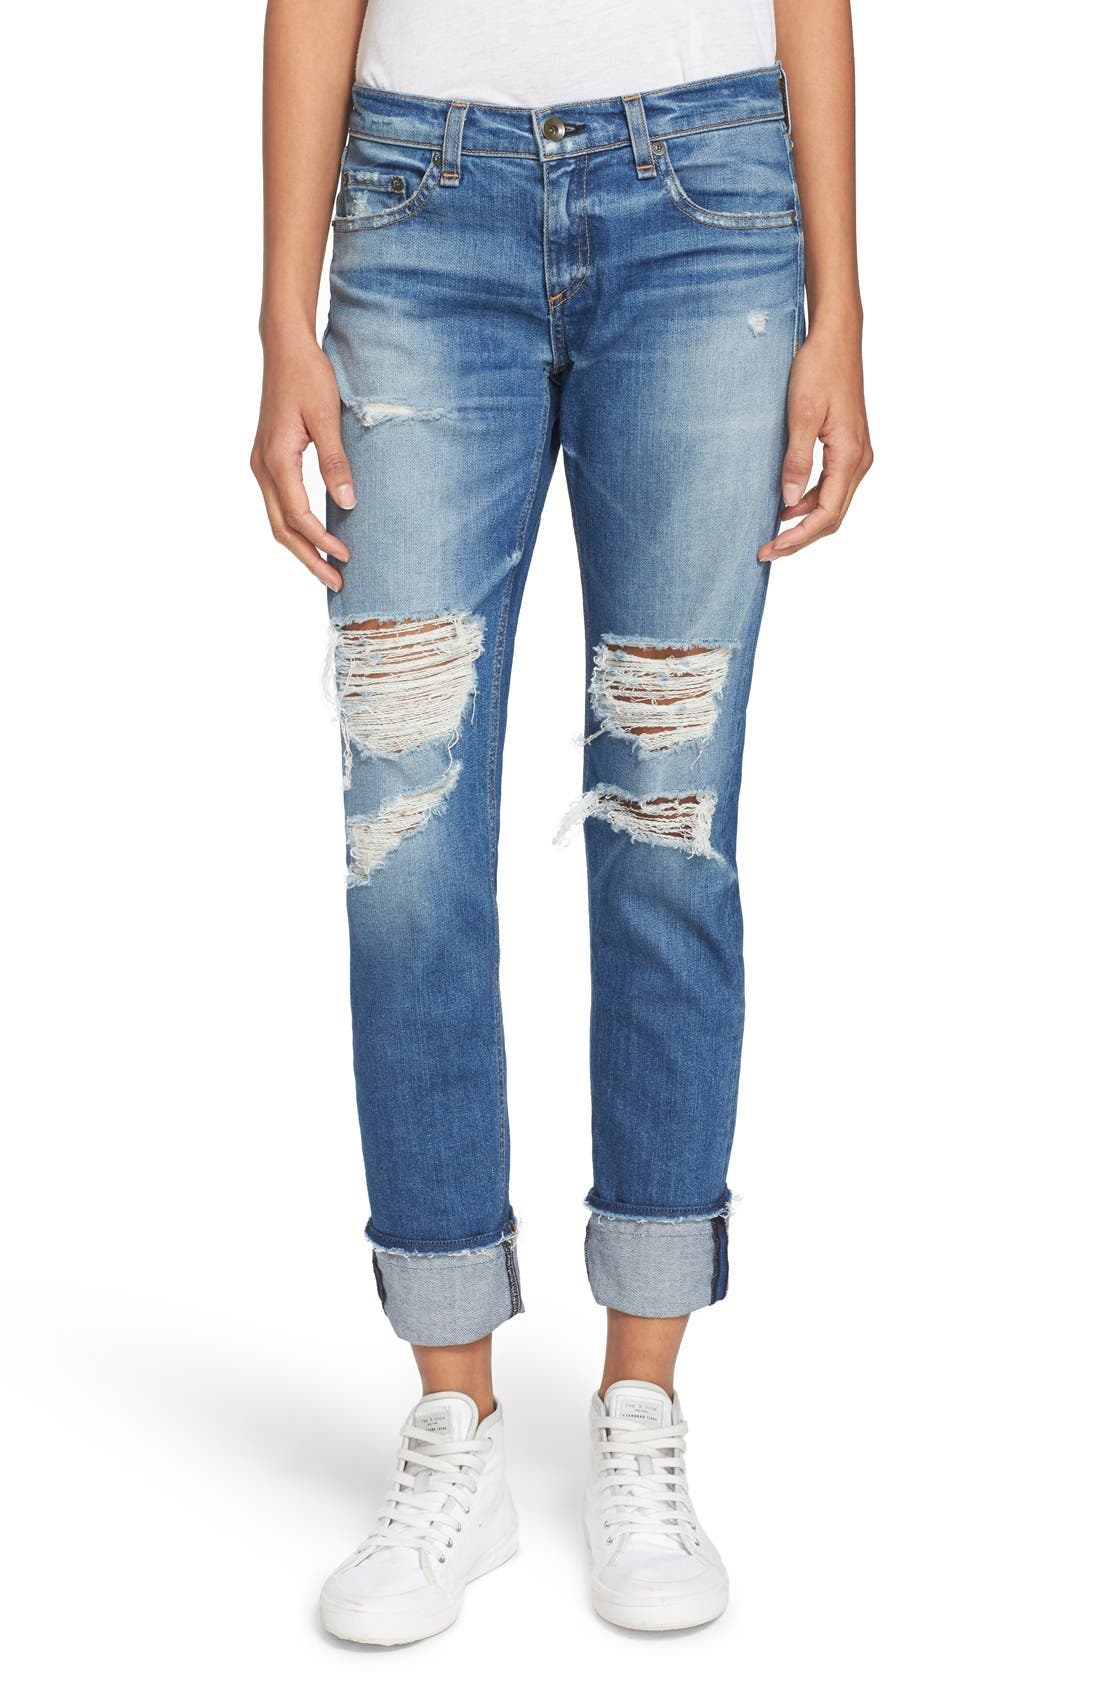 'The Dre' Slim Fit Boyfriend Jeans,                             Main thumbnail 1, color,                             429